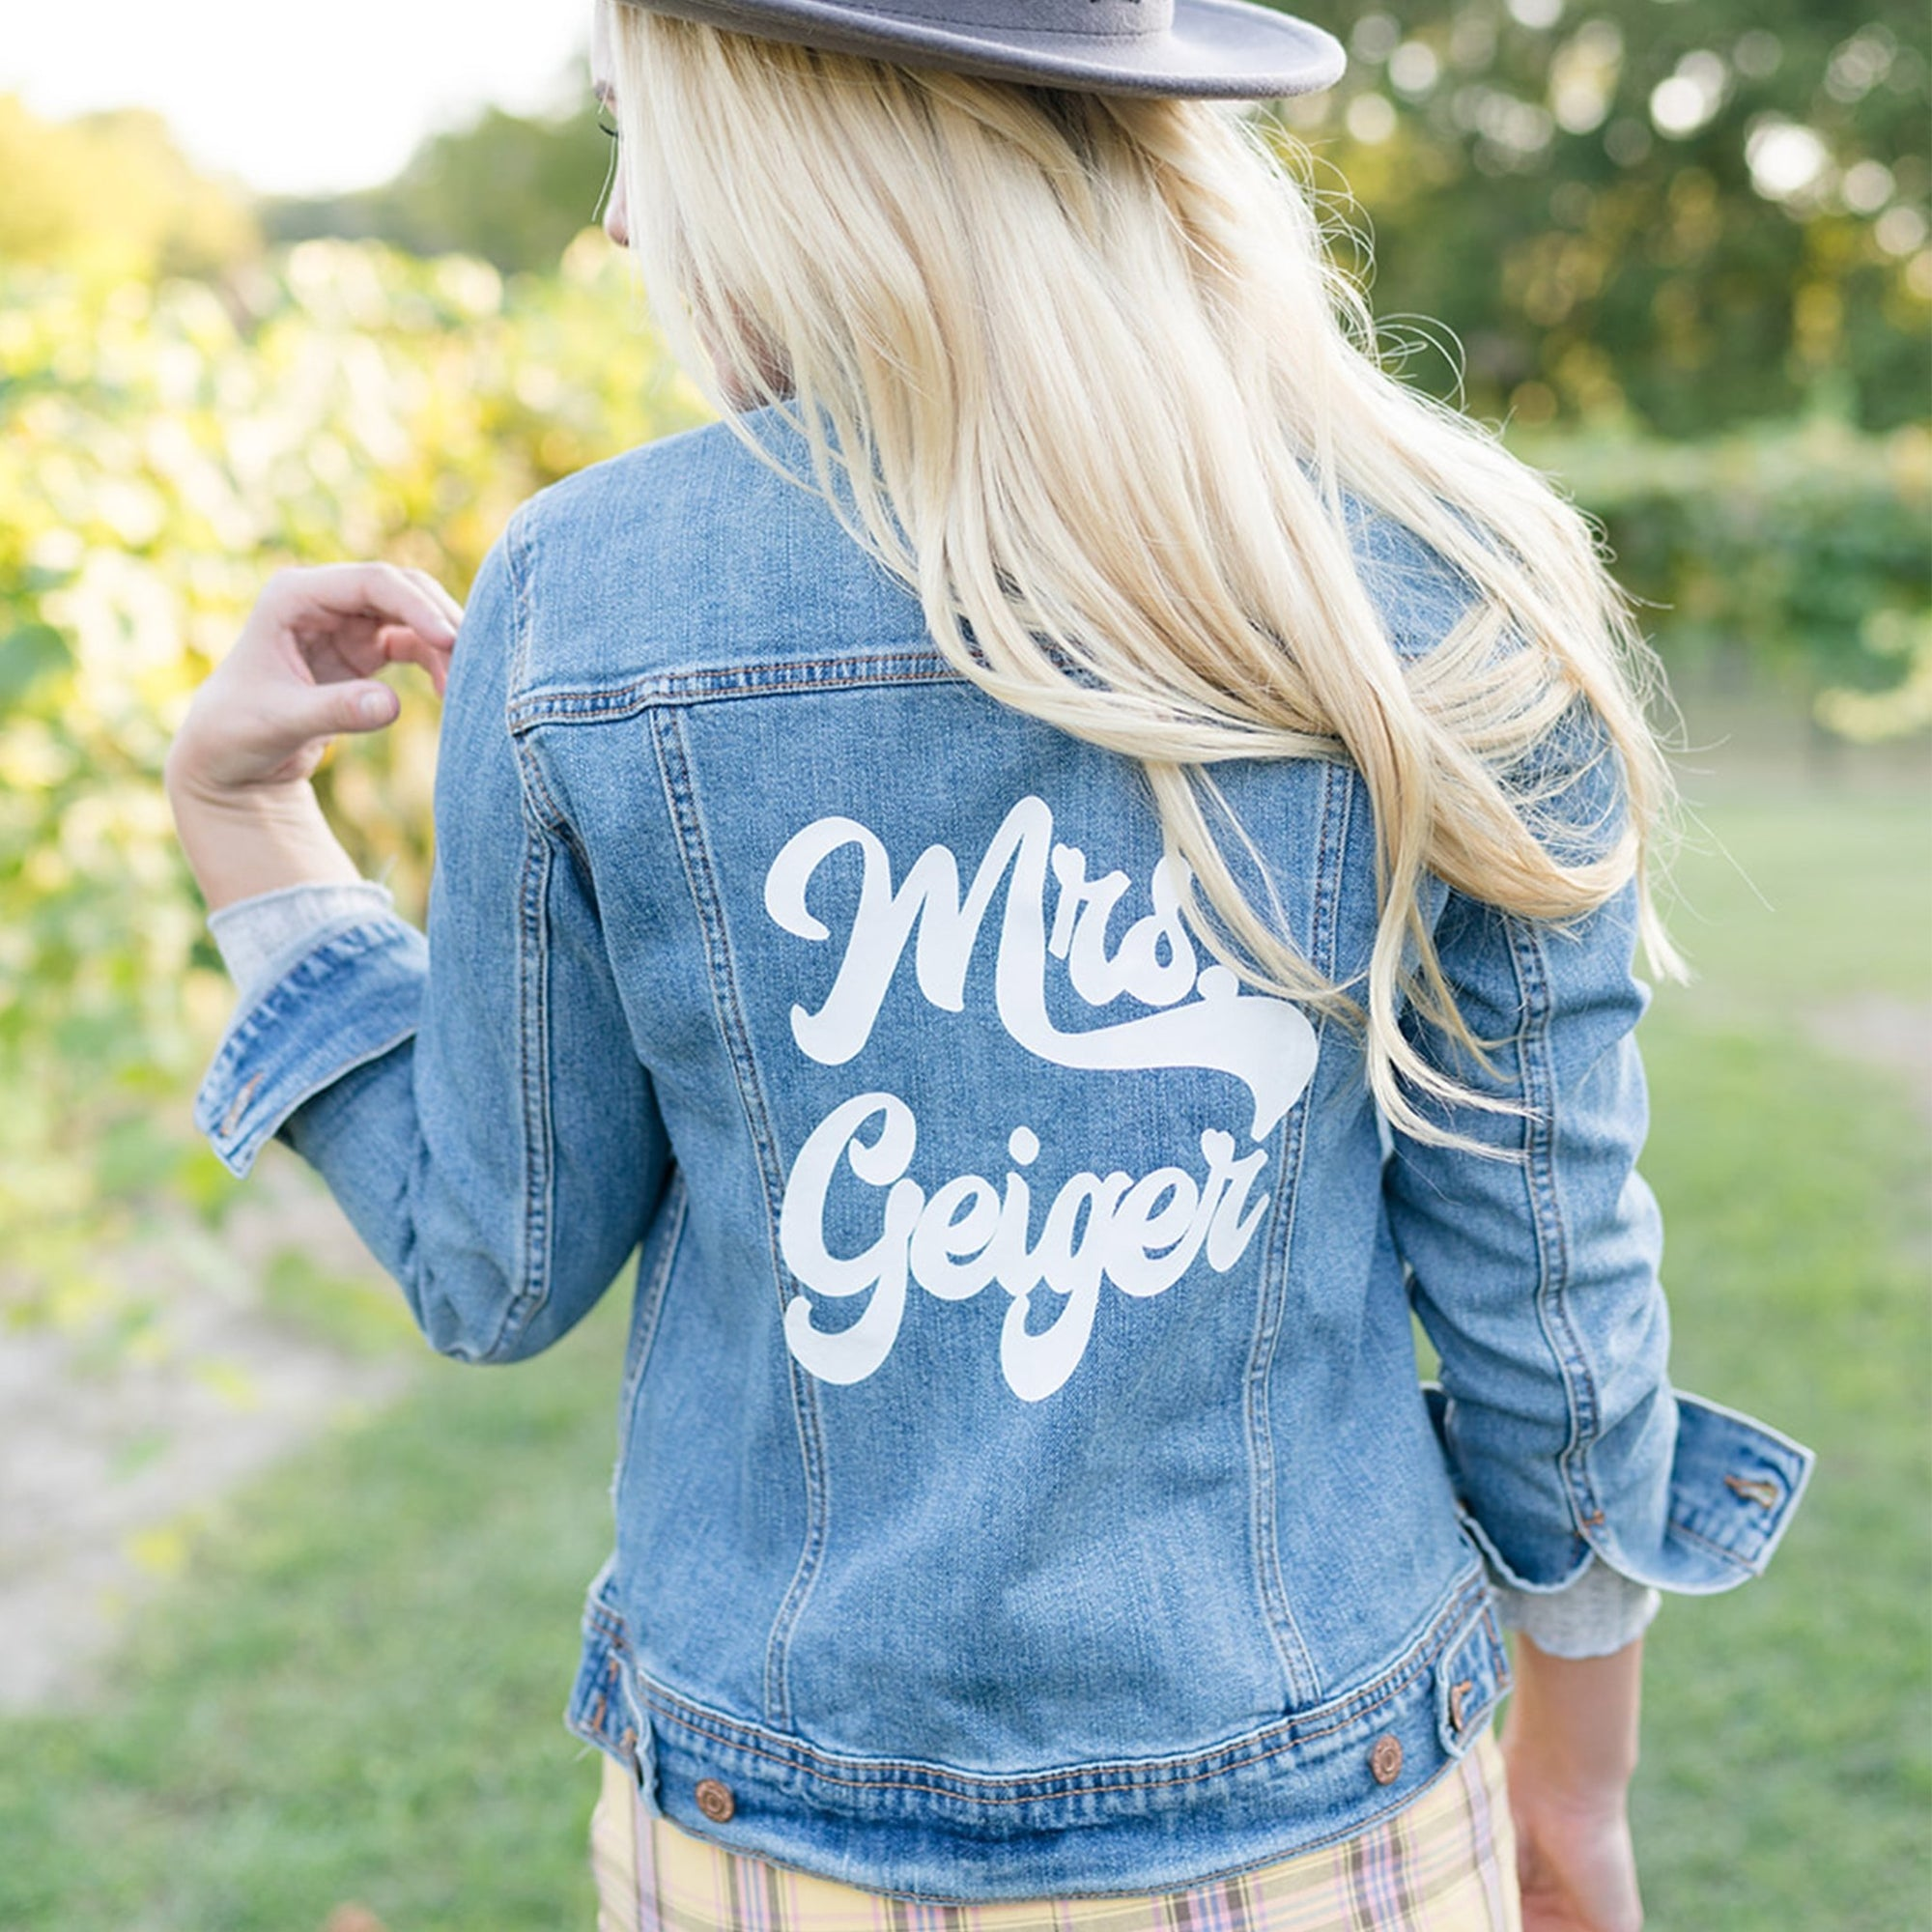 Last Name Denim Jacket, Retro